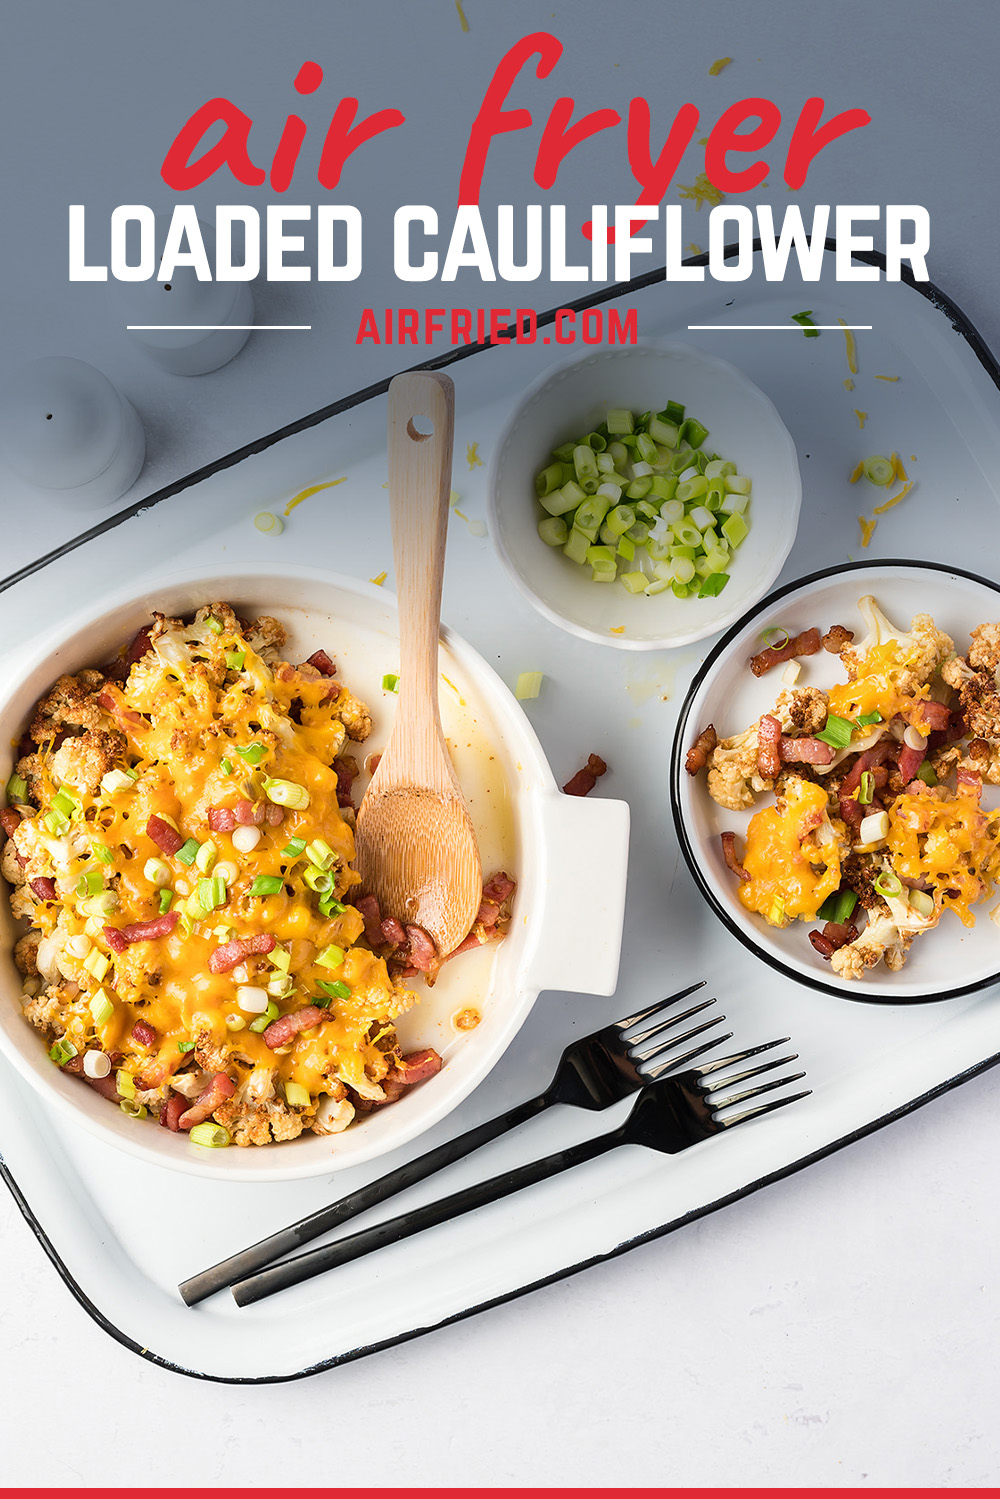 Air fryer loaded cauliflower works great as a low carb alternative to potatoes.